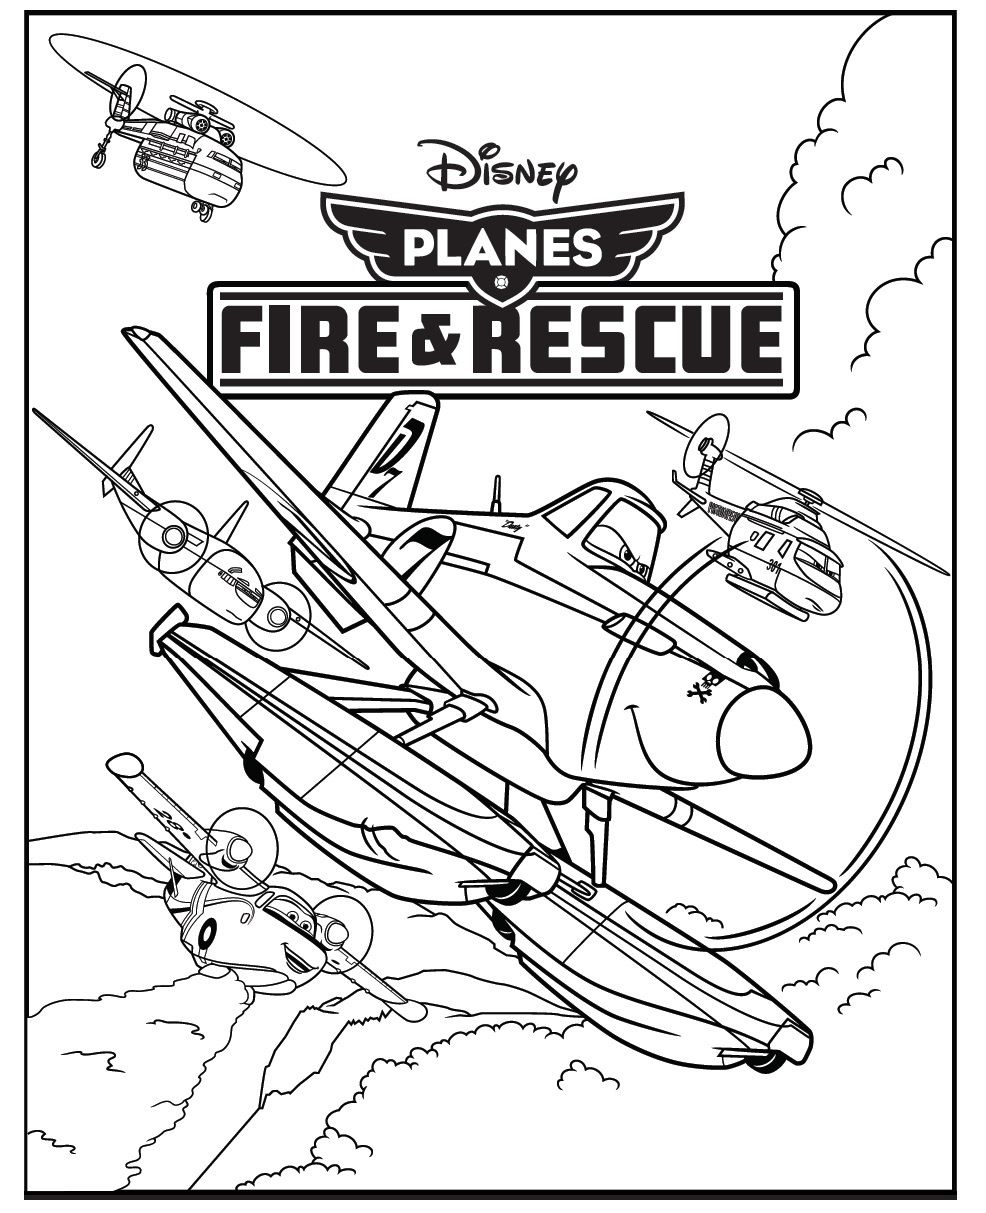 Planes 2 fire and rescue colouring page with dusty crophopper